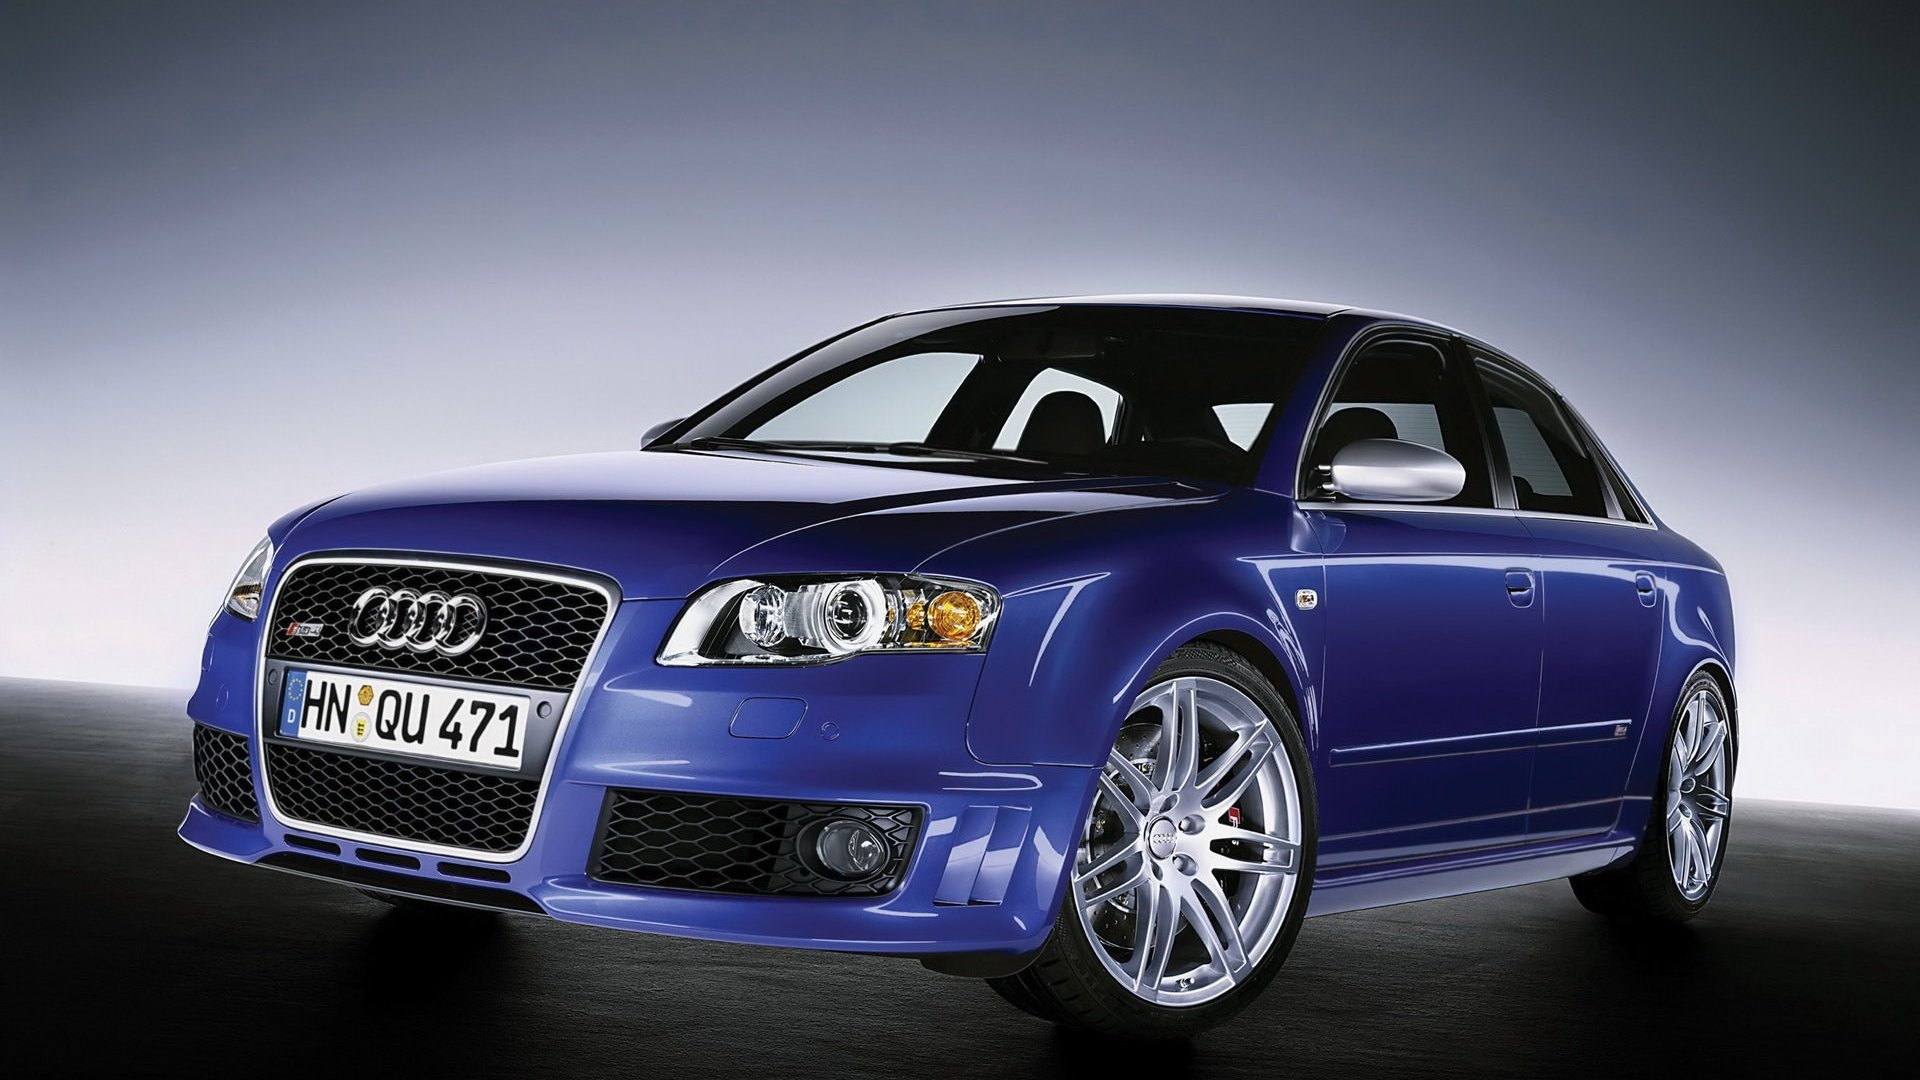 Free Audi High Quality Wallpaper Id 431460 For Hd 1080p Computer